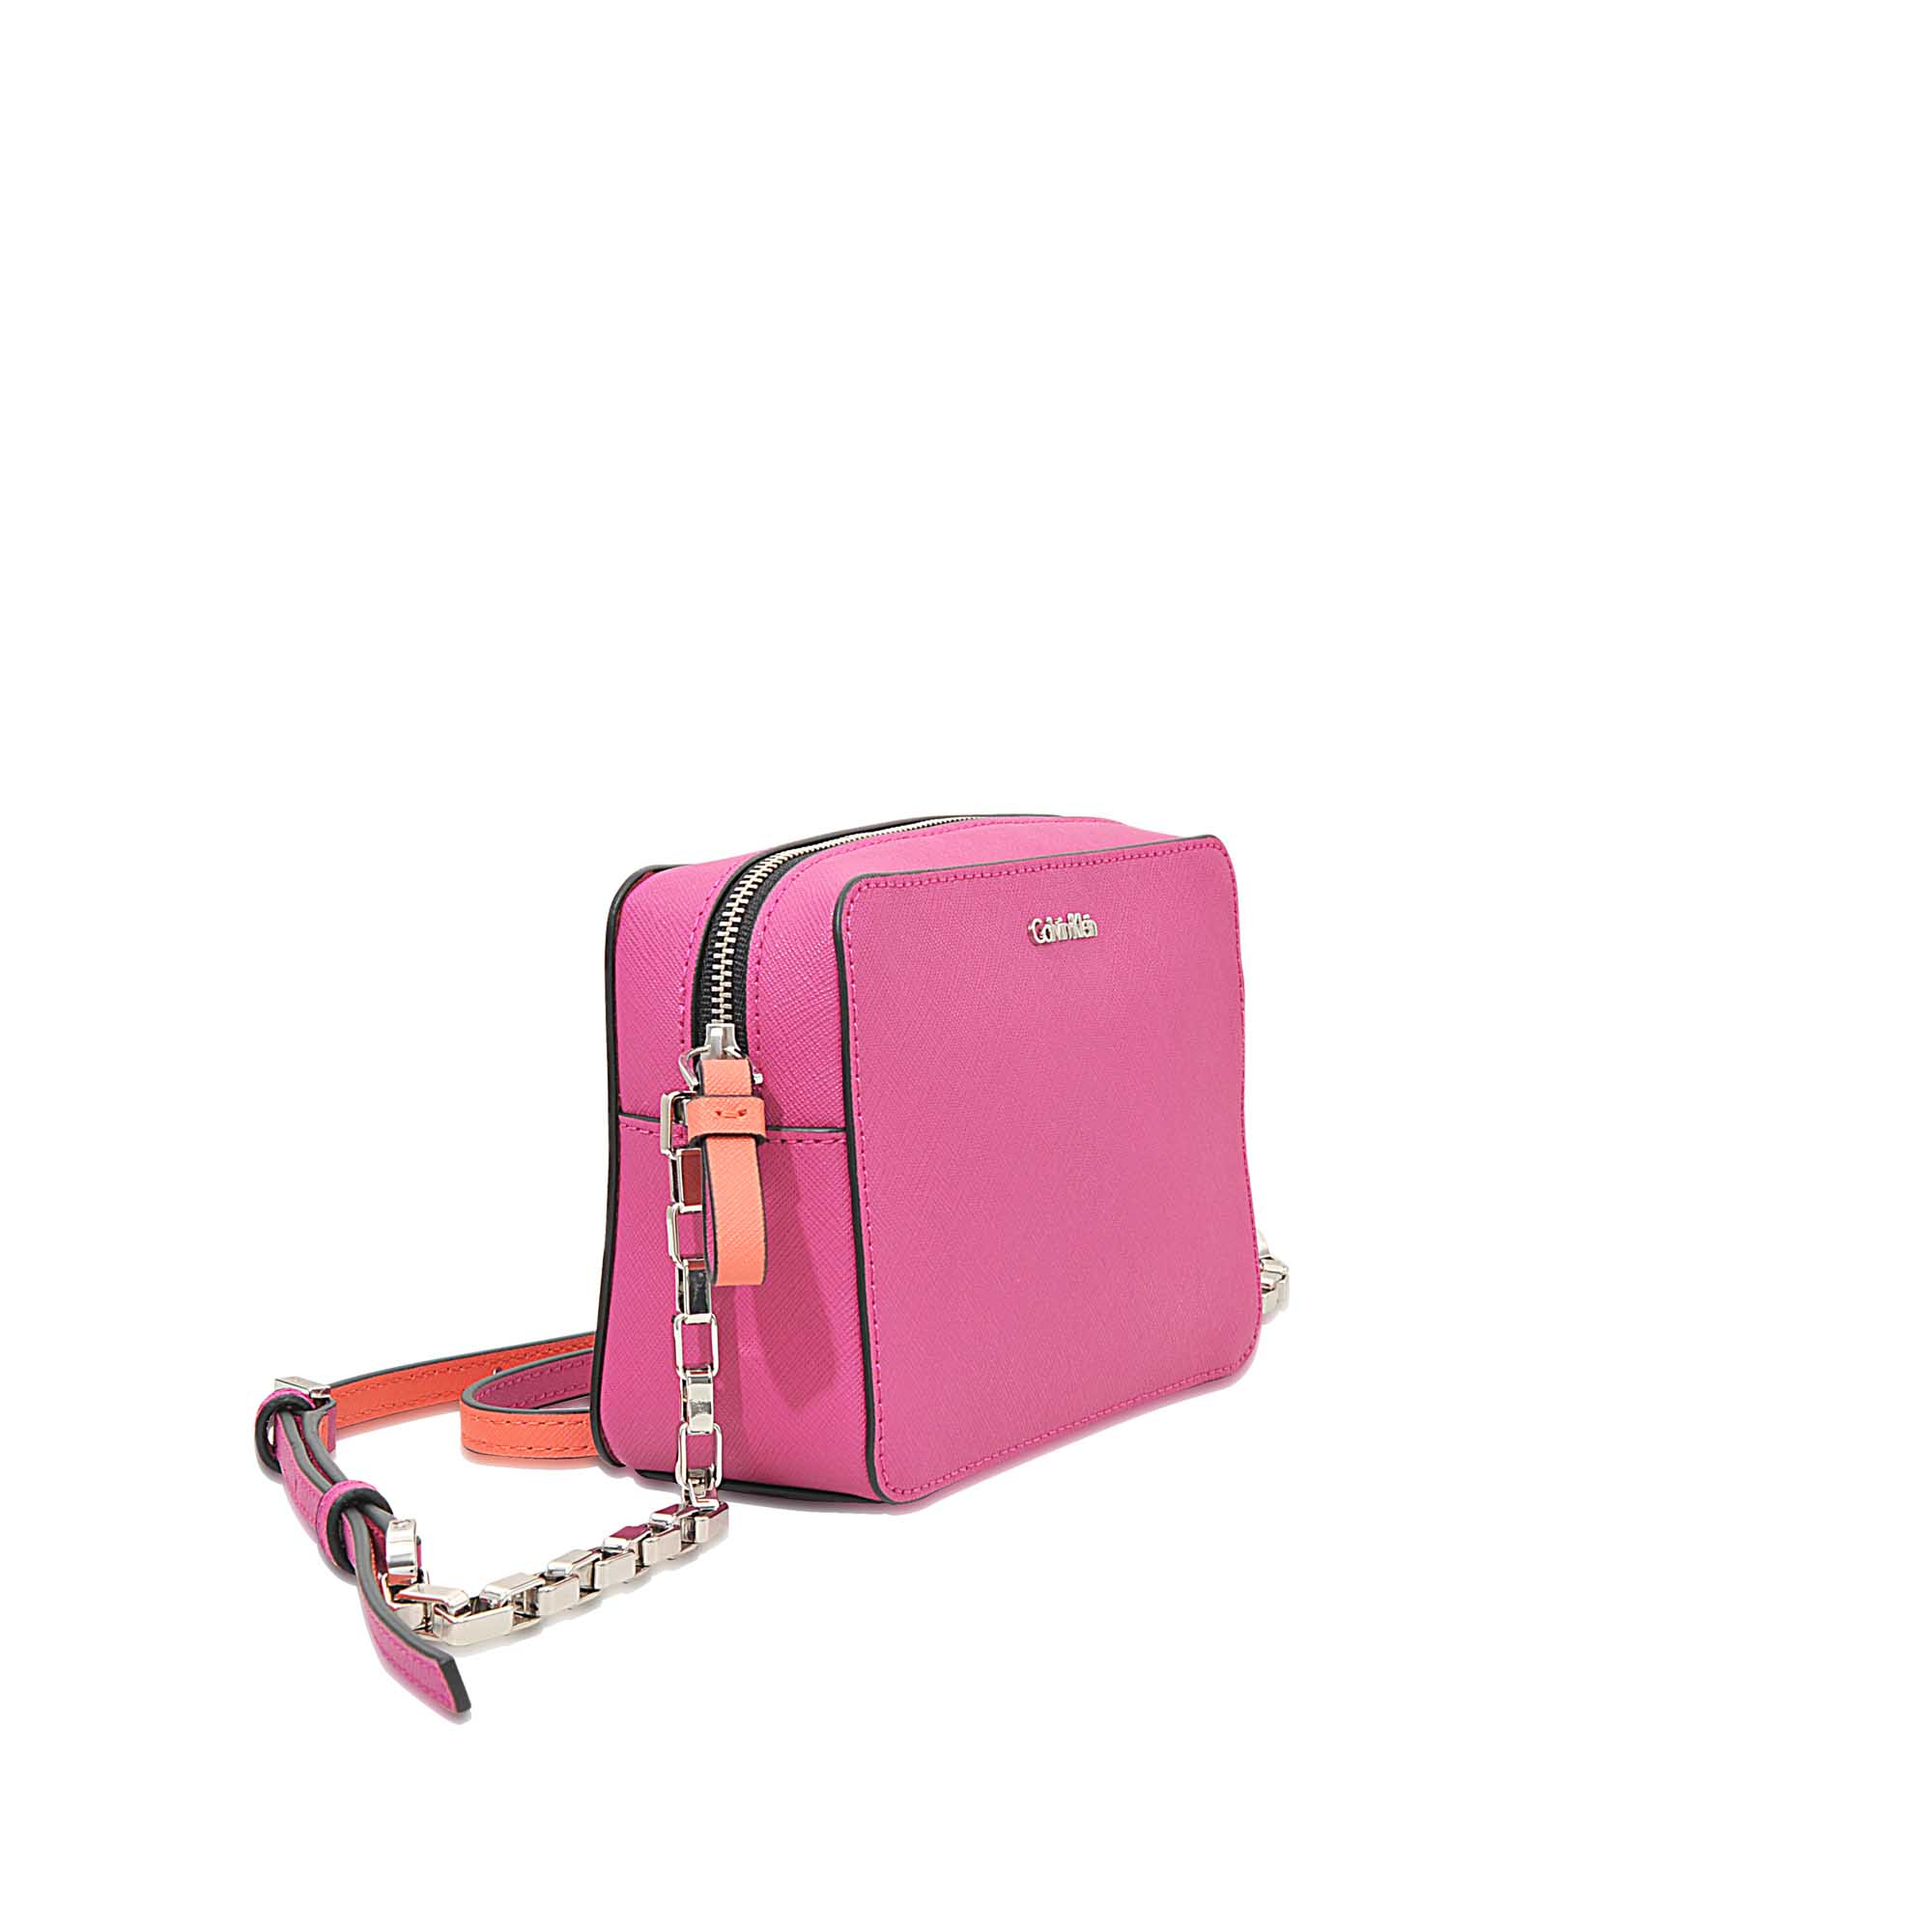 the latest b5677 048af calvin-klein-sofie-mini-crossbody-bag-product-2-580769720-normal.jpeg